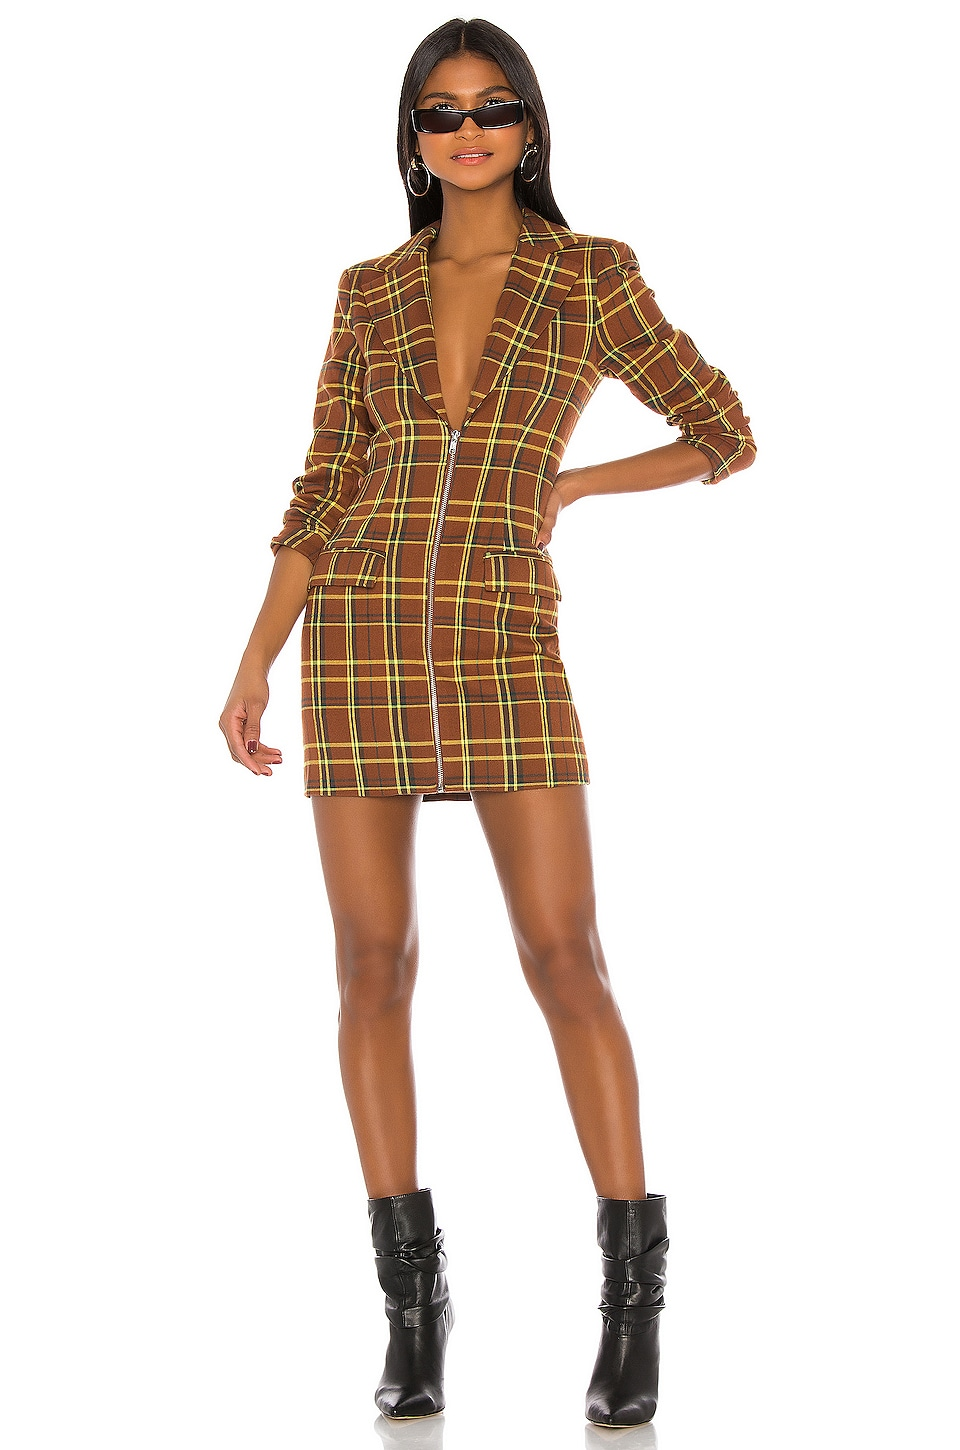 h:ours Vanessa Blazer Dress in Brown Plaid